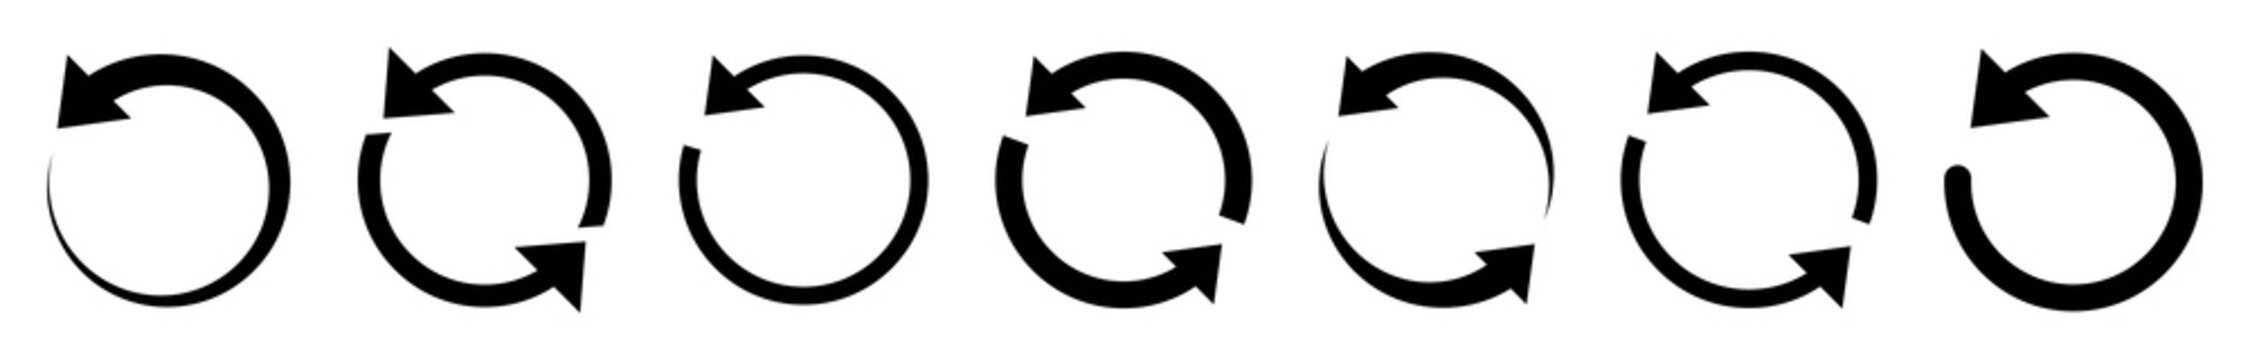 Arrow rotate icons set. Rotation black circle. Collection two cycle arrow. Modern flat simple arrows isolated. Reset signs. Arrows vector graphic elements.